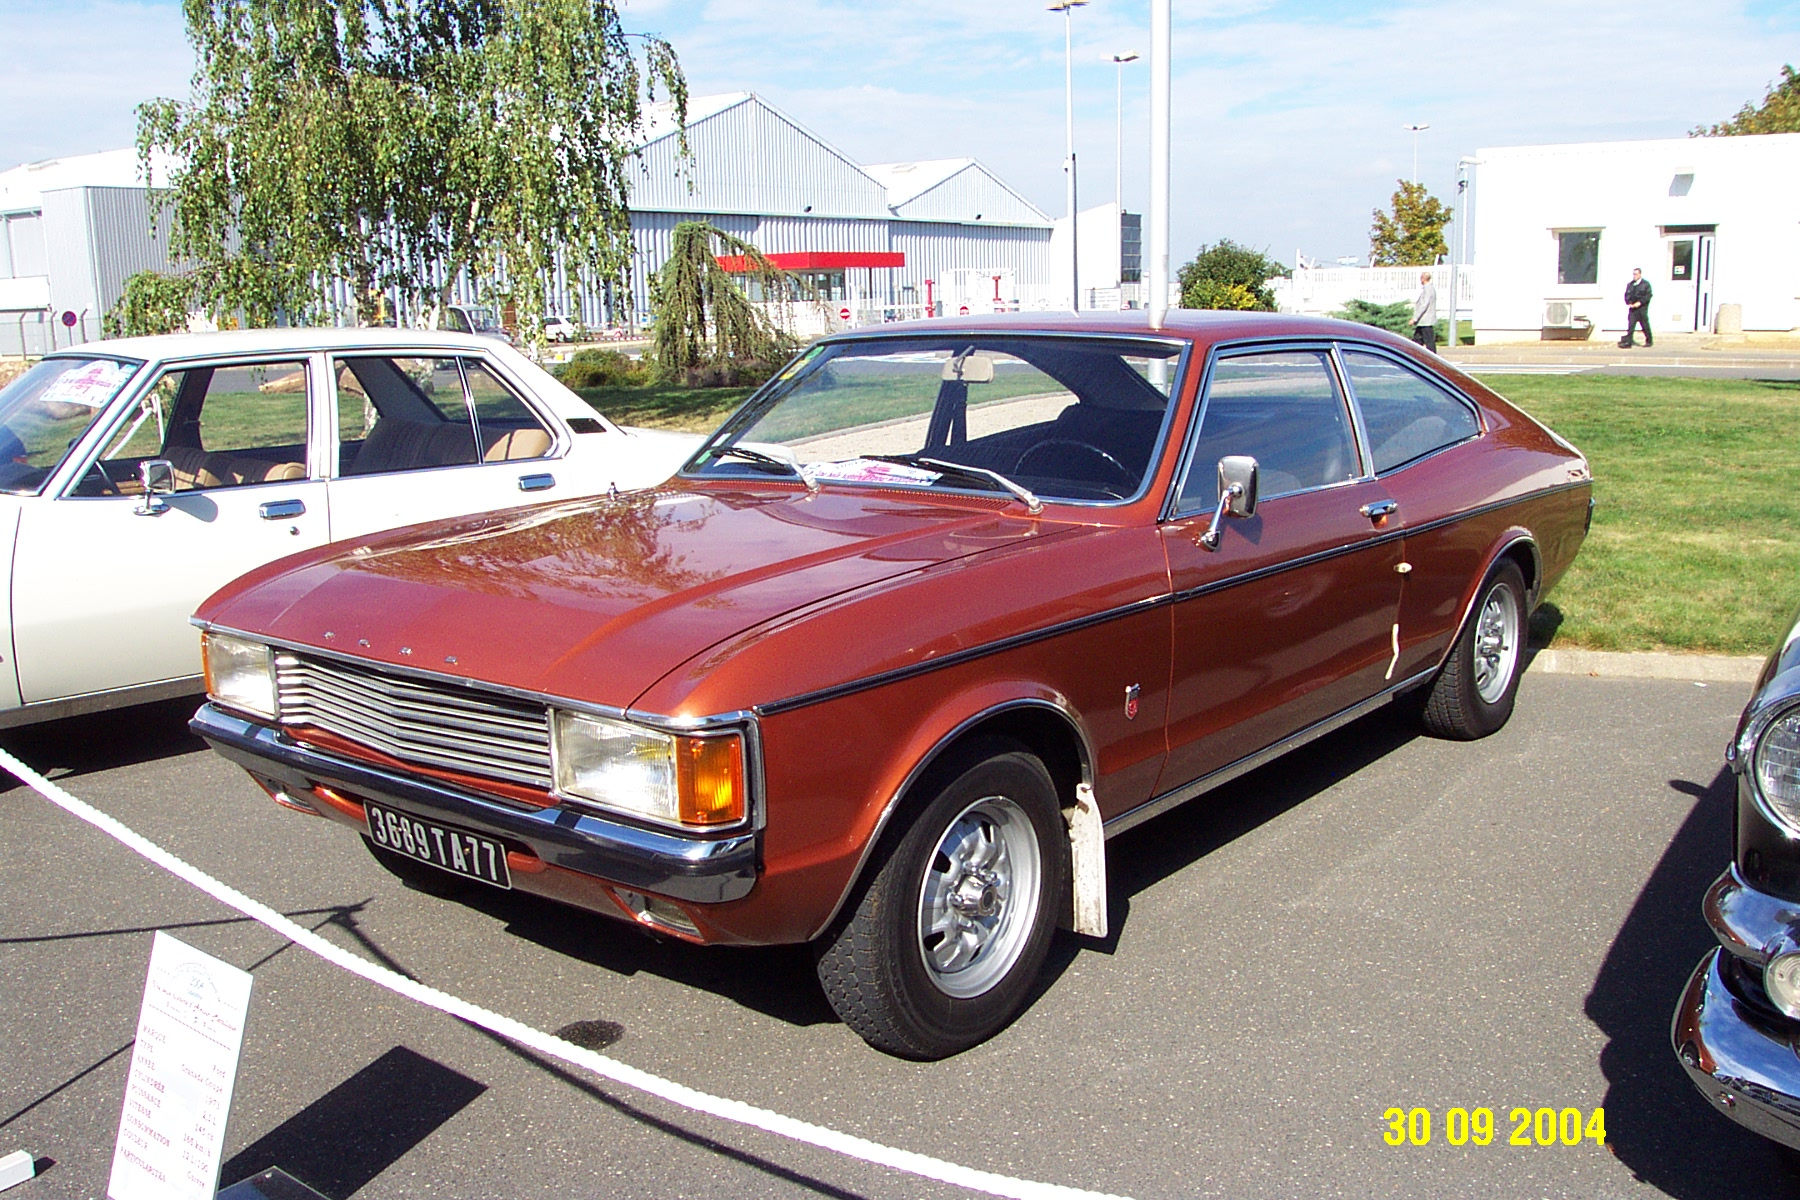 Ford Granada 2L3 coupé